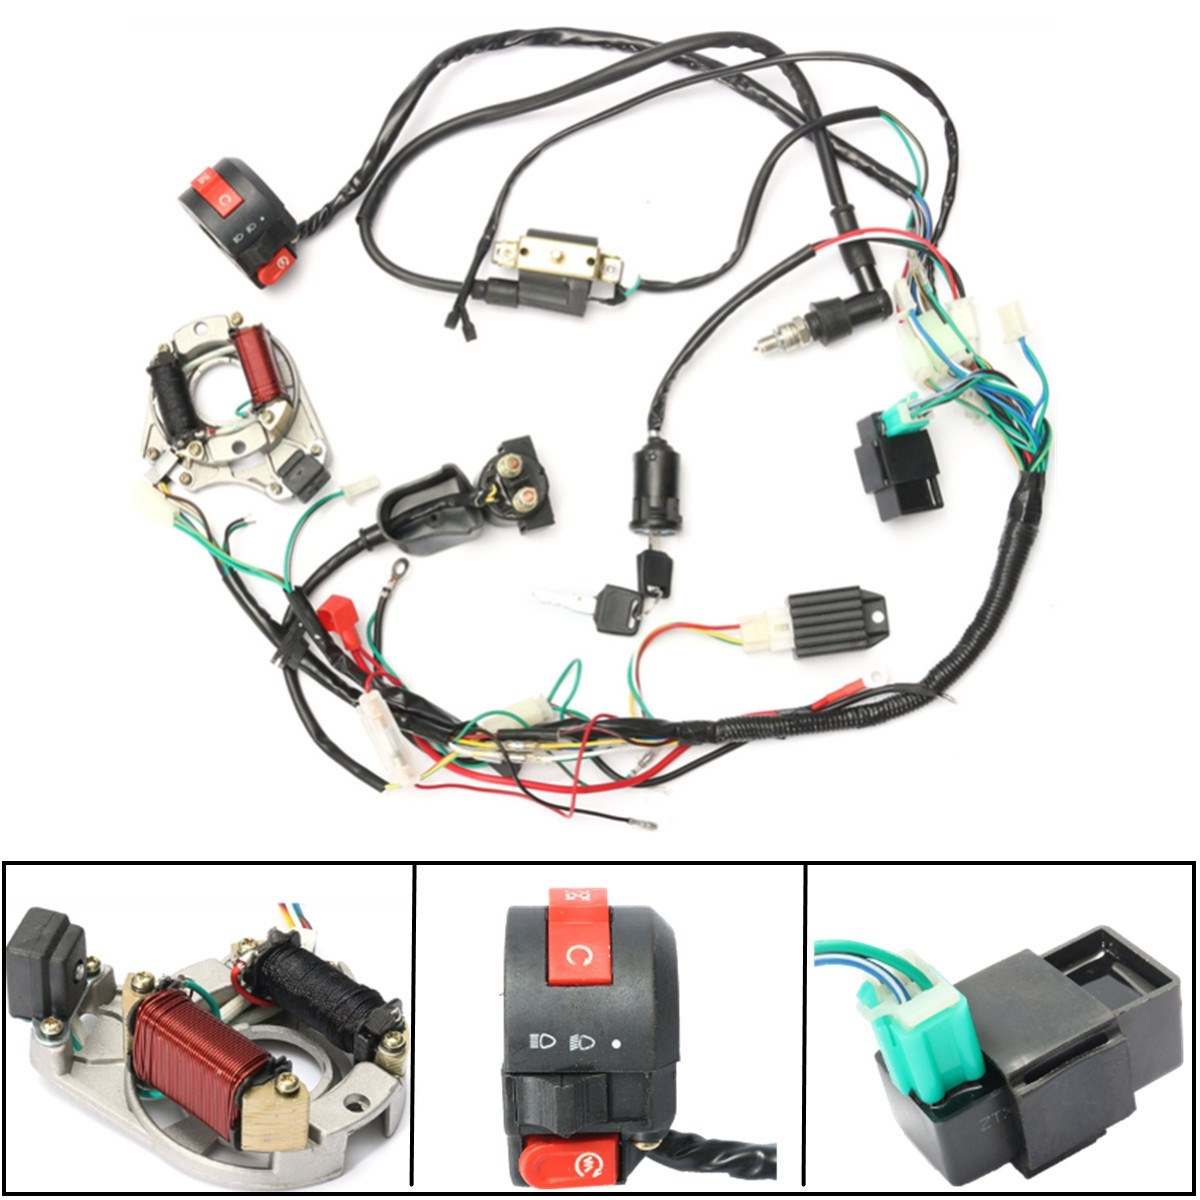 50 70 90 110cc cdi wire harness assembly wiring kit set for atv hanma 110 atv wiring diagram 110 atv wiring harness [ 1200 x 1200 Pixel ]